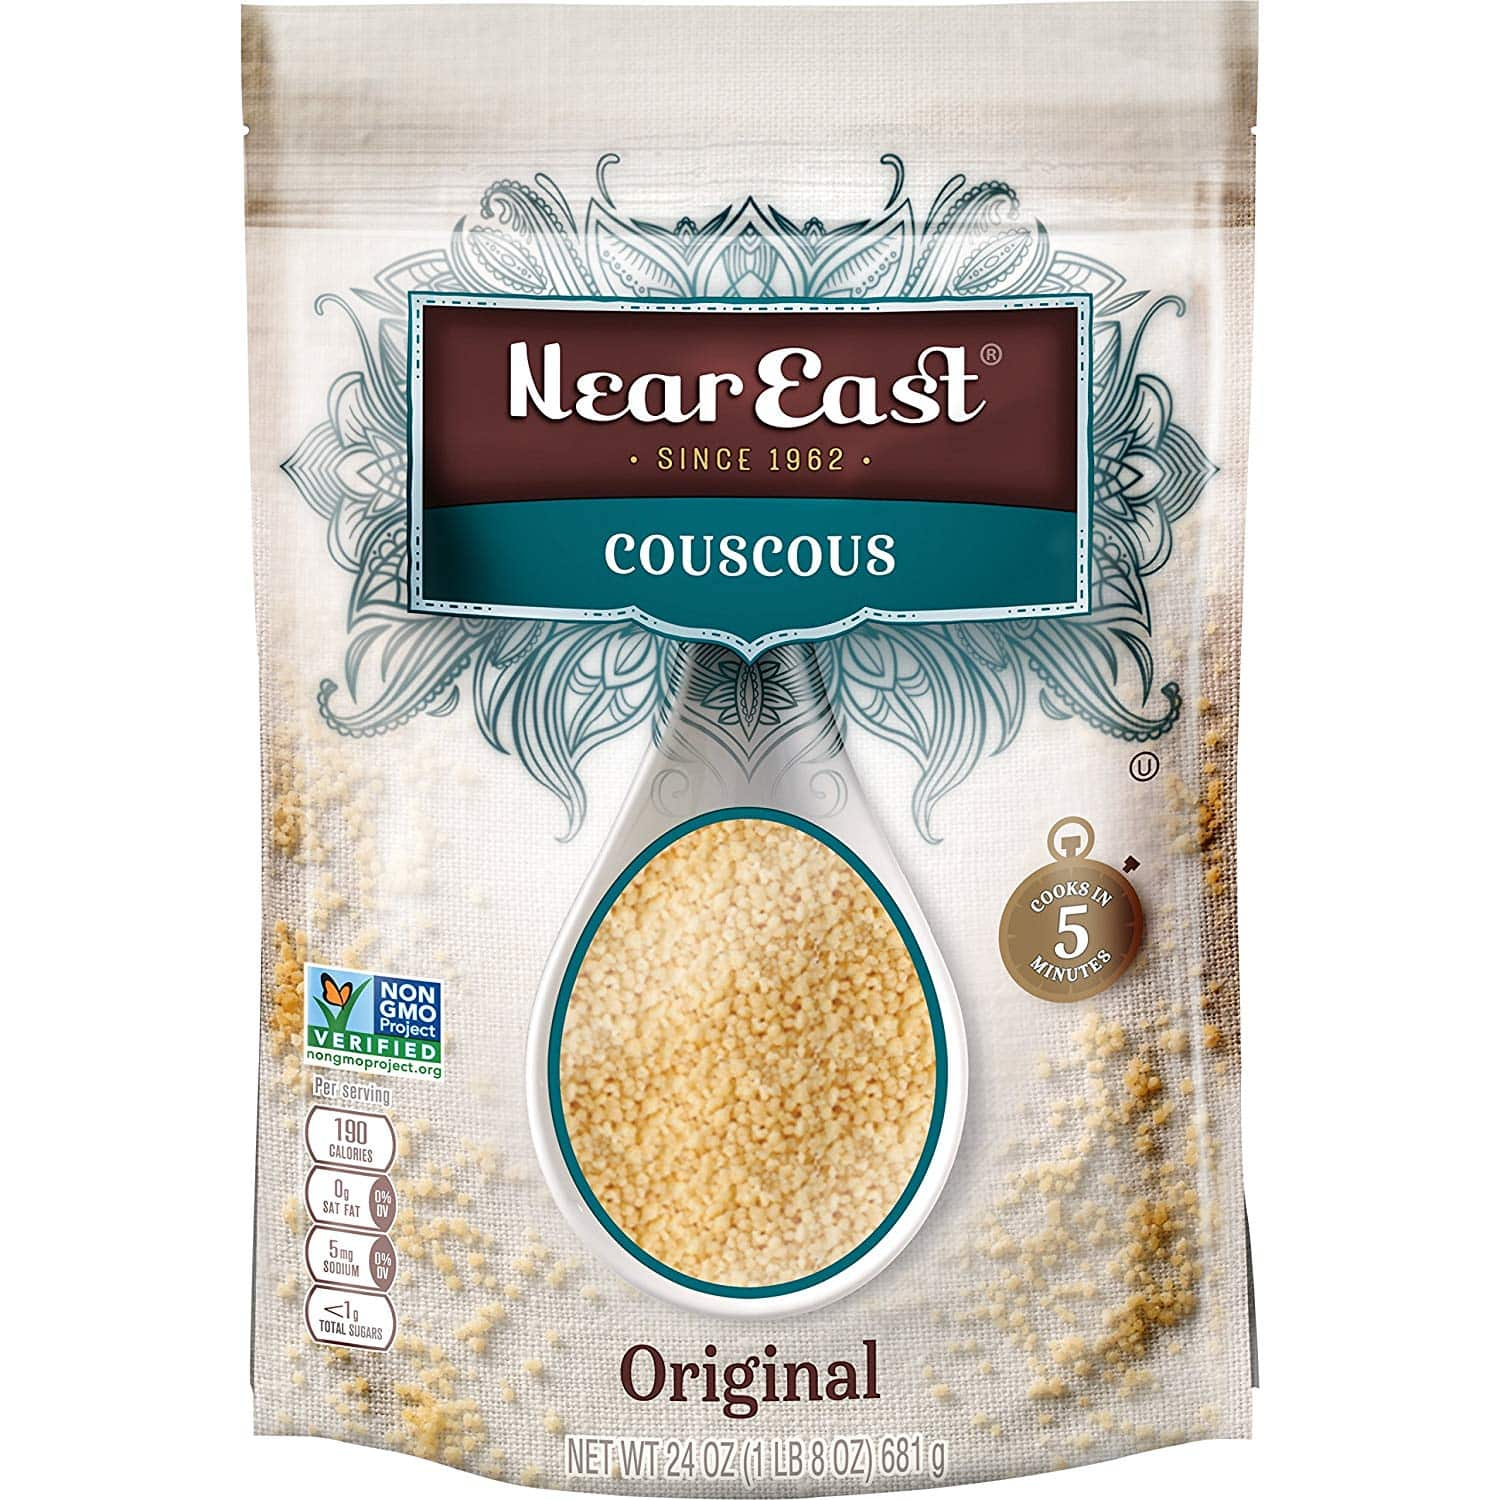 2-Pack of 24oz. Near East Couscous in Resealable Bags (Original) $9.74 + free shipping with prime